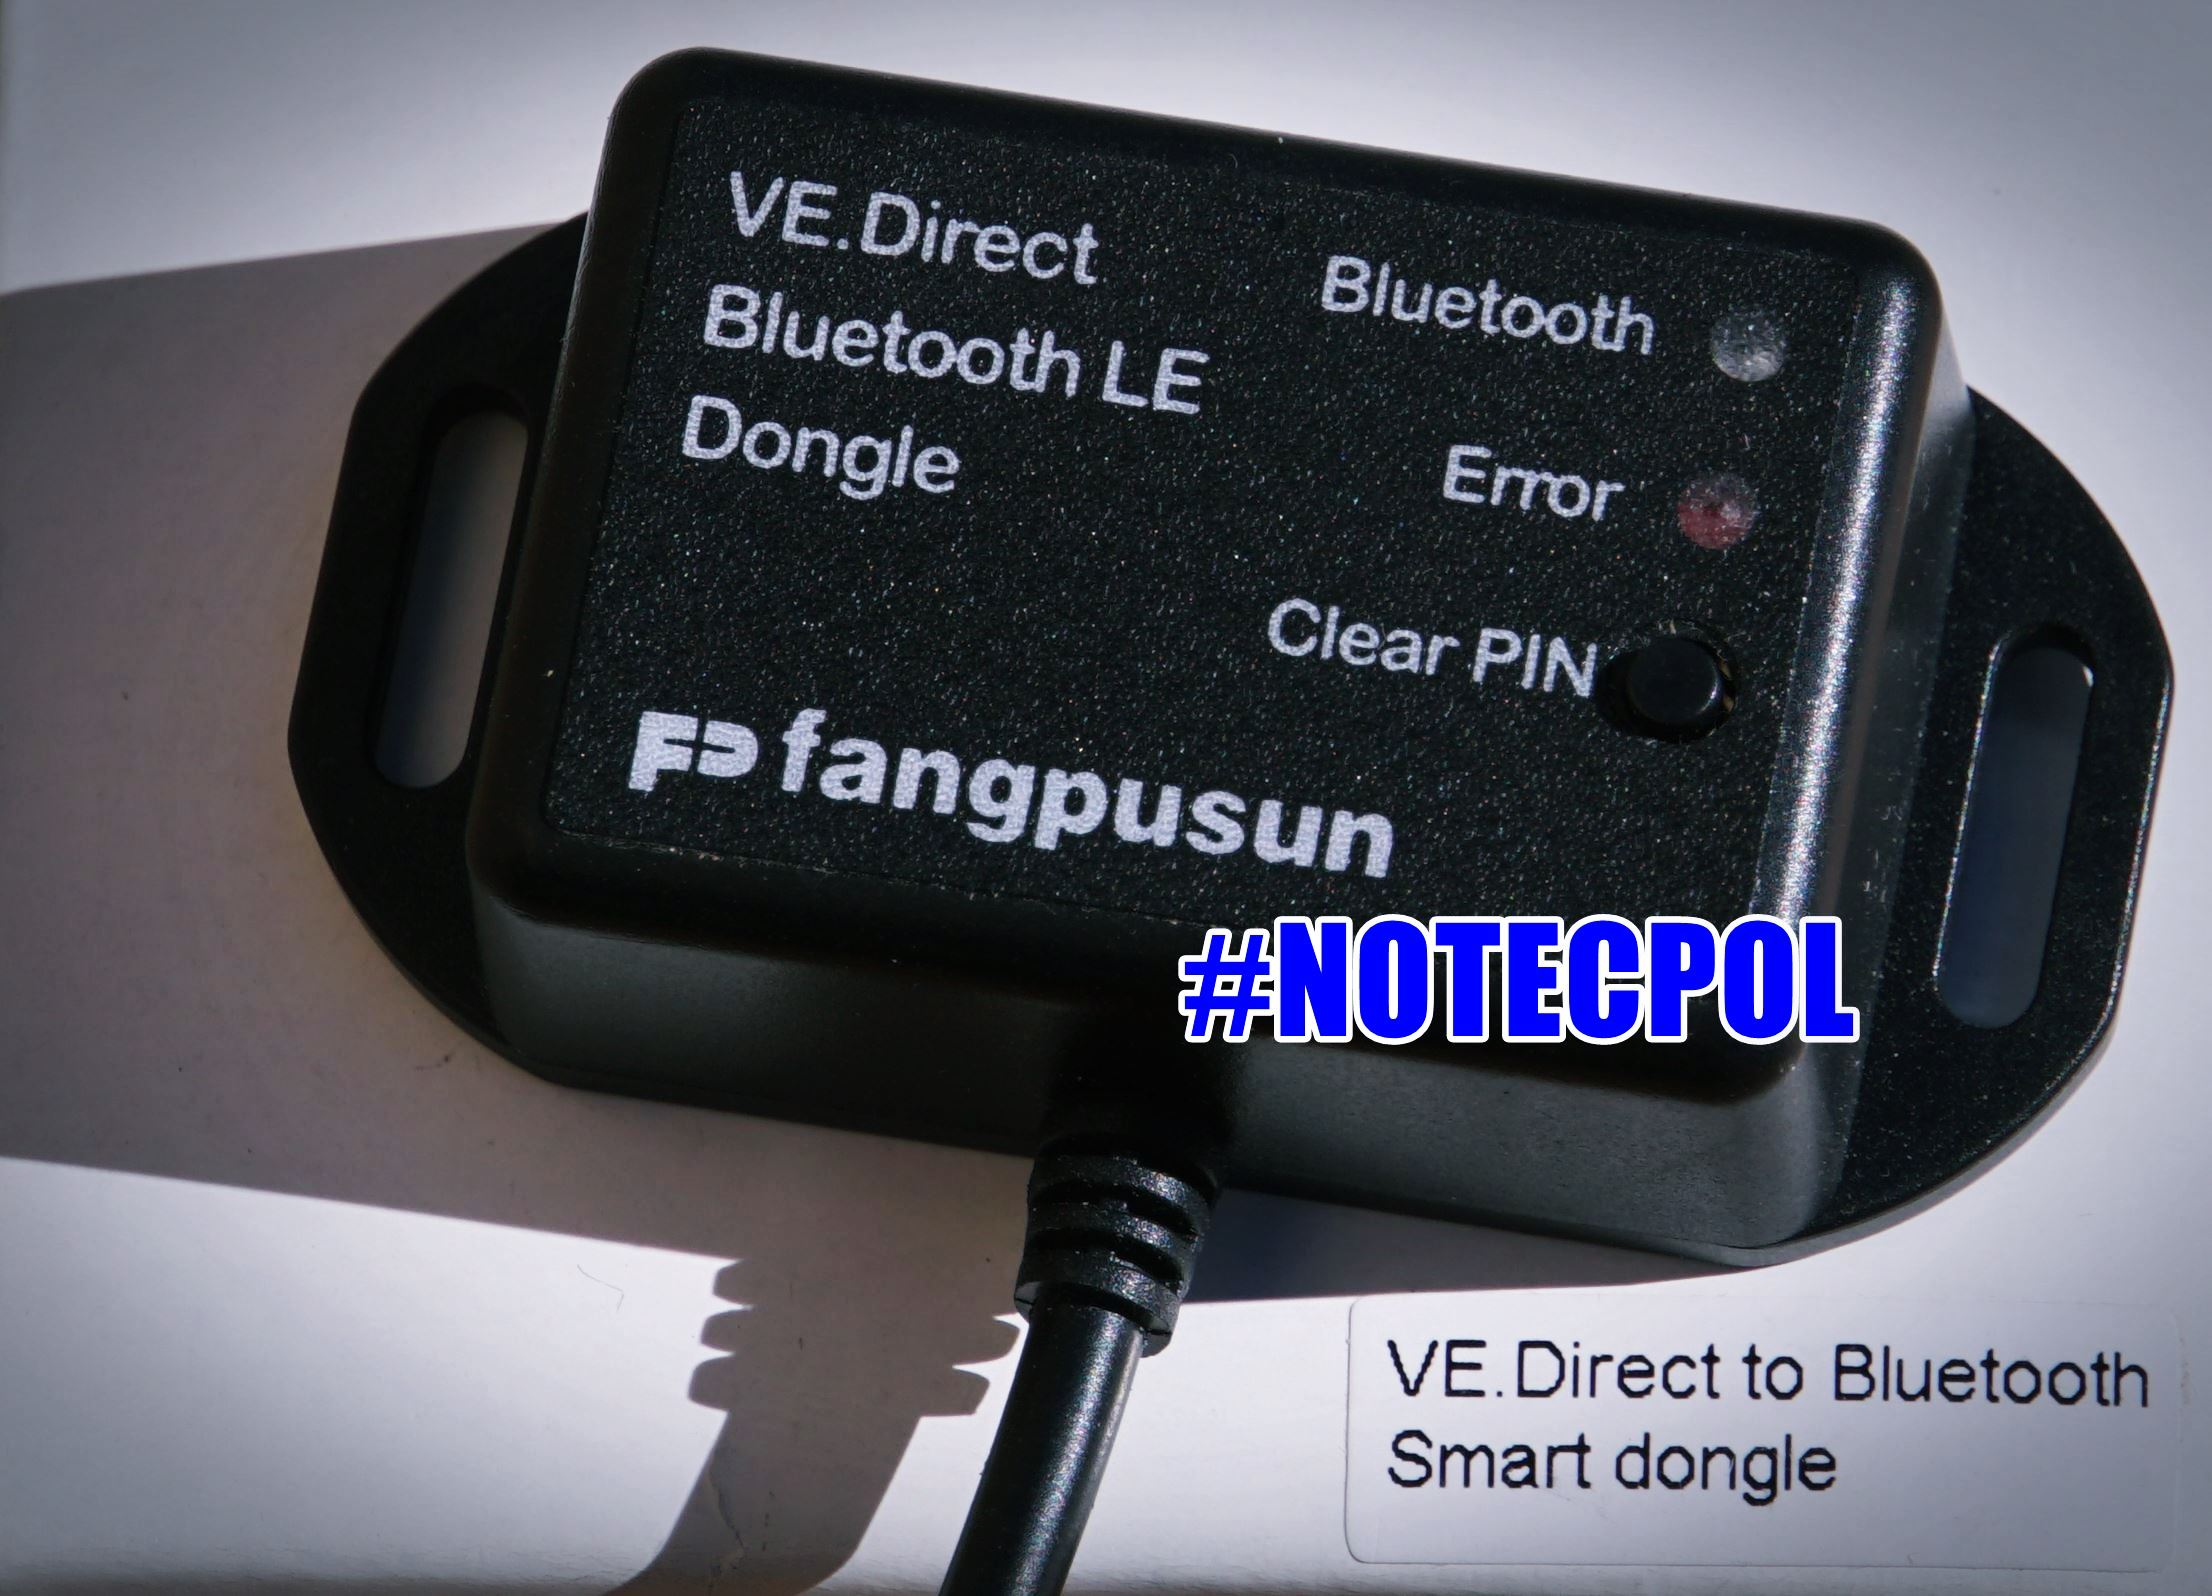 VE: Direct Bluetooth Smart Dongle